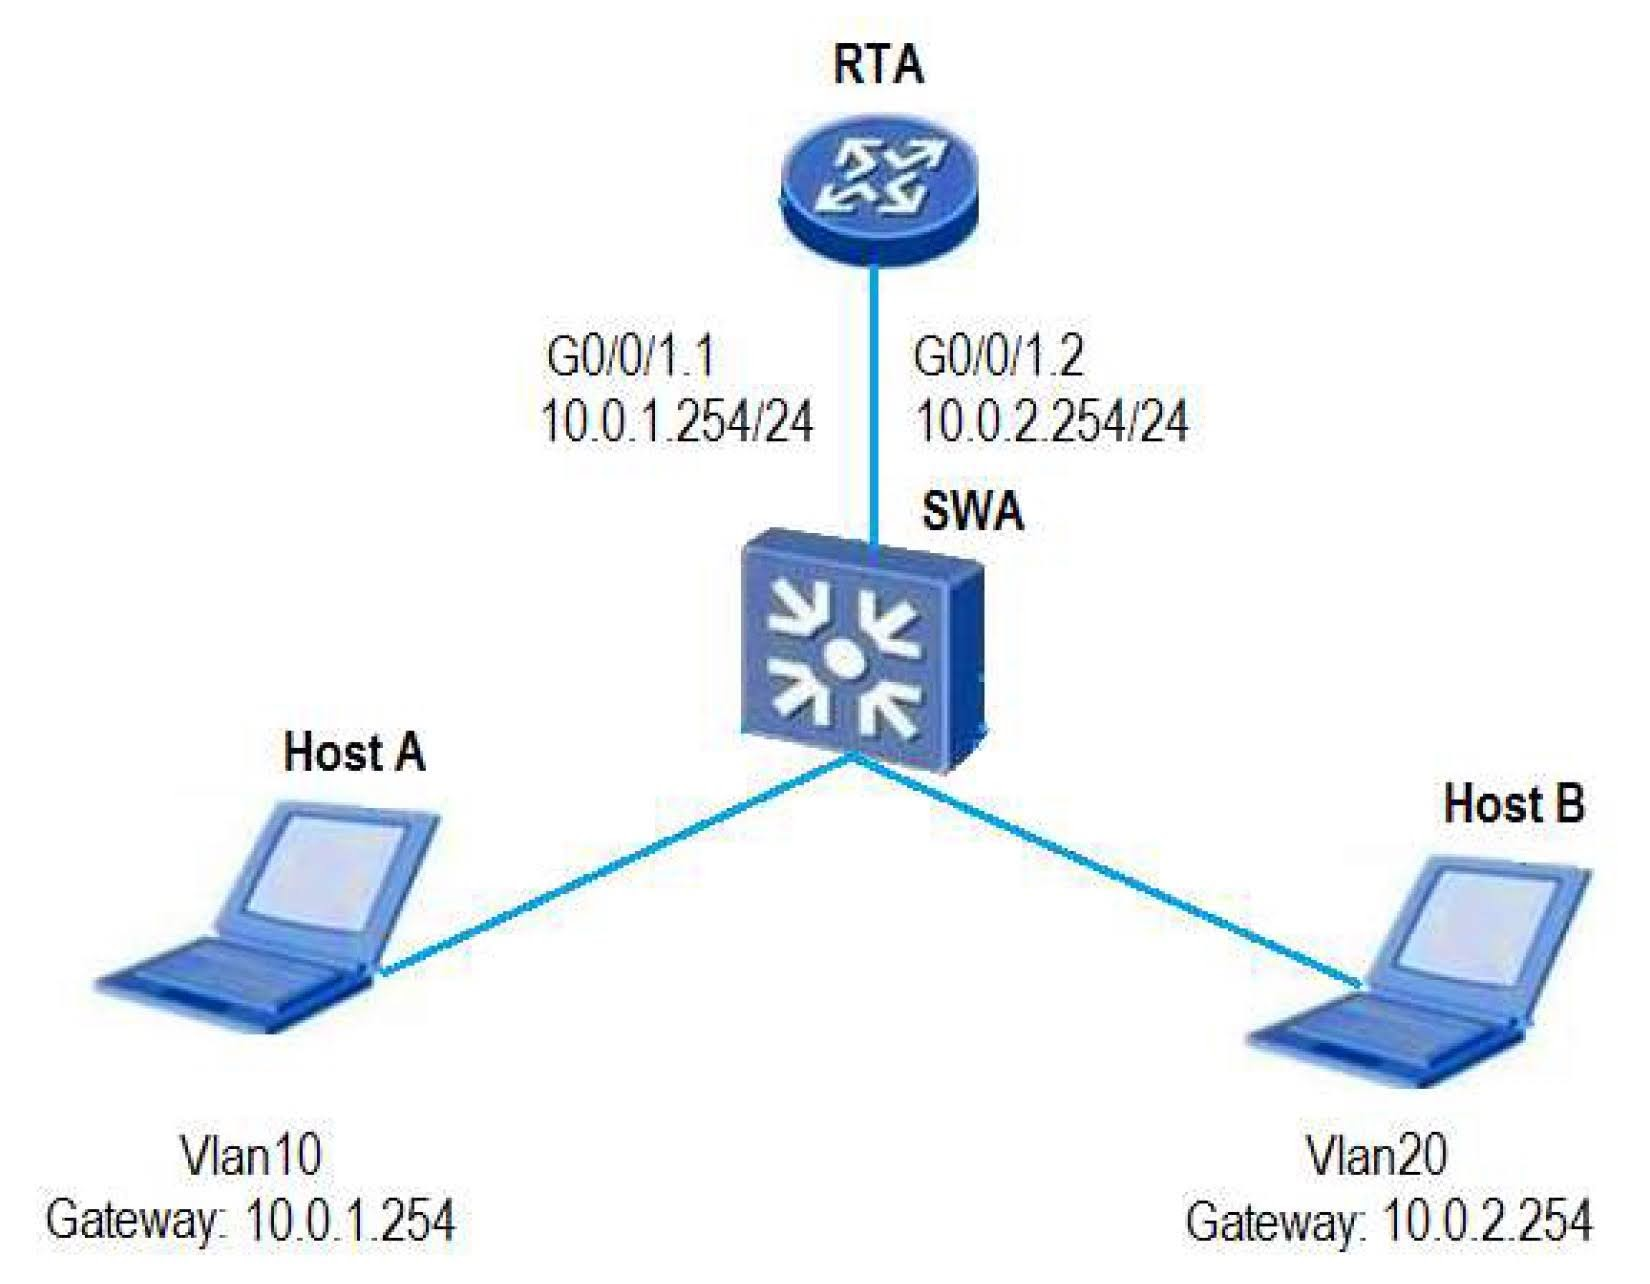 Host A and Host B use VLAN routing to facilitate communication. When interface G0/0/1.2 of RTA receives a frame from Host B, what will RTA do?